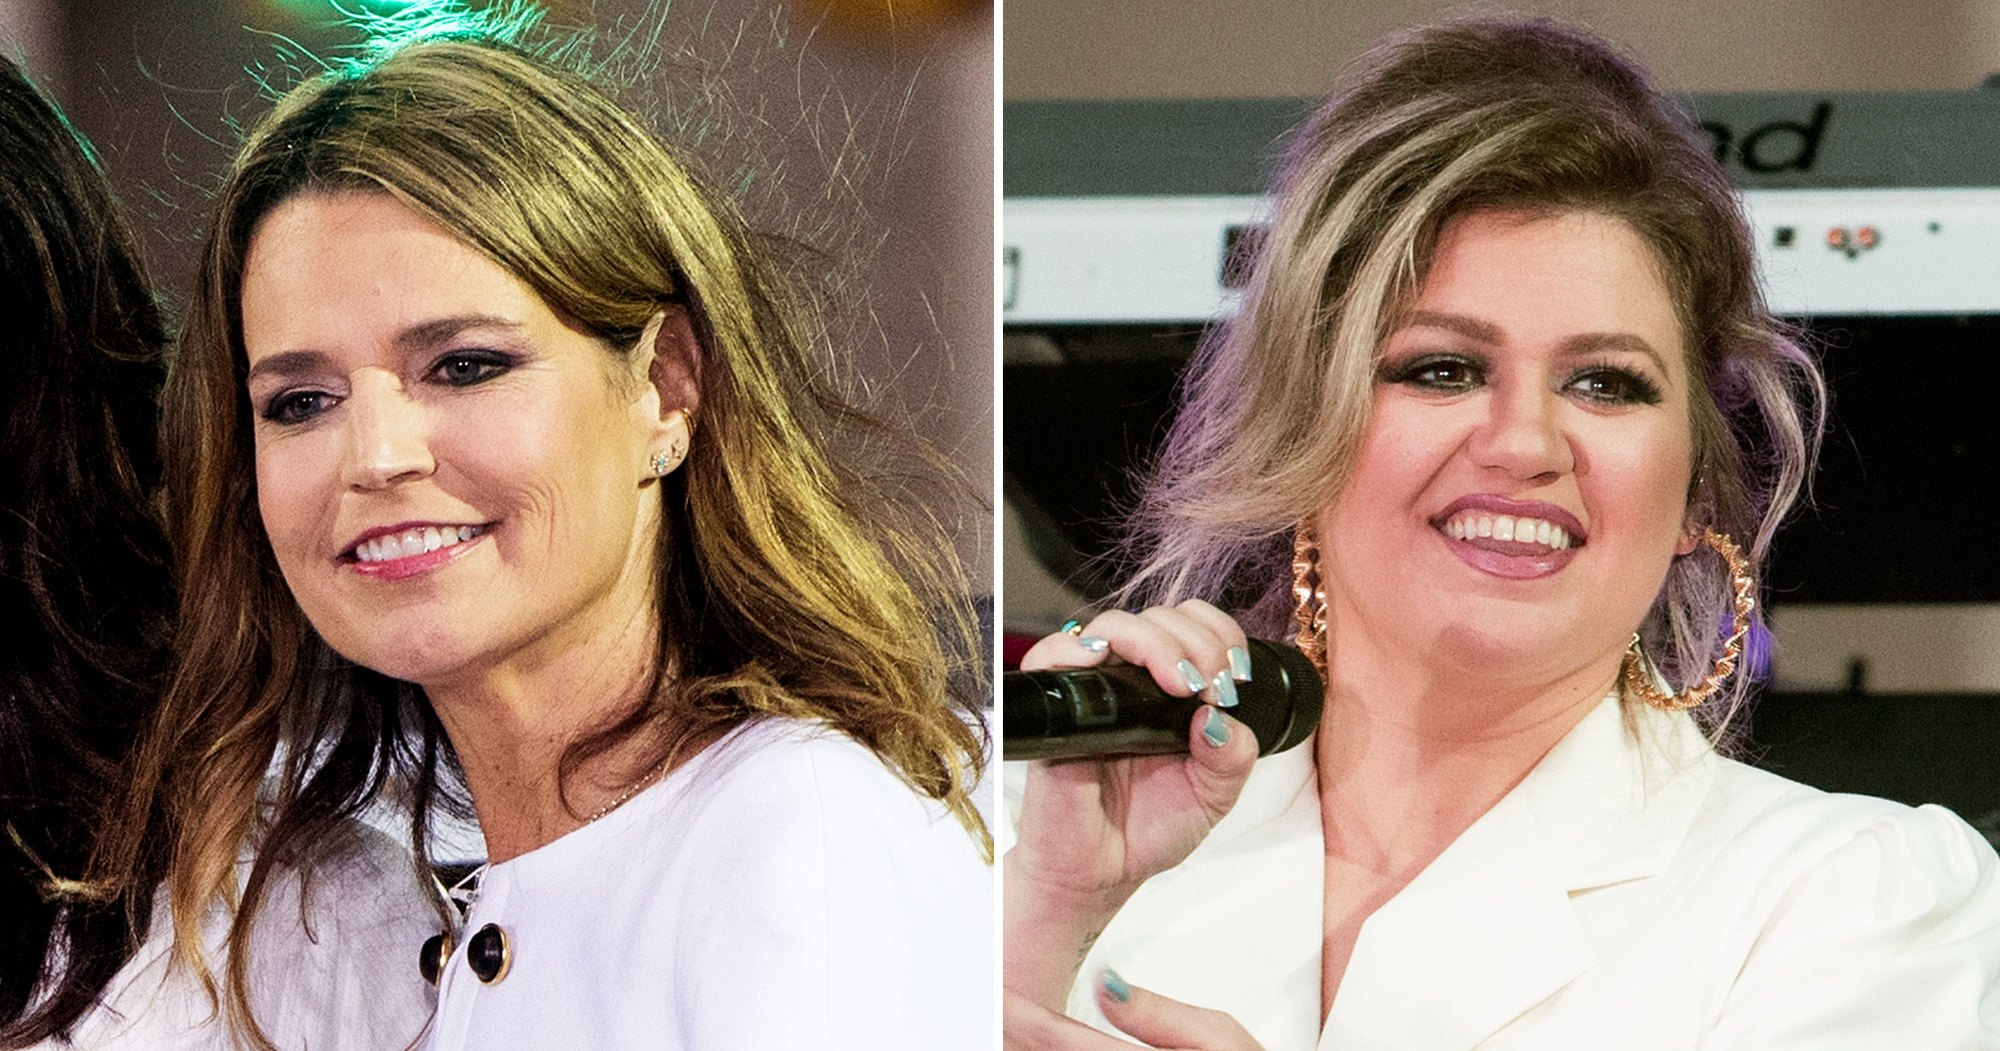 Savannah Guthrie and Kelly Clarkson's Daughters Are Now 'Best Friends': 'They Cannot Be Separated'